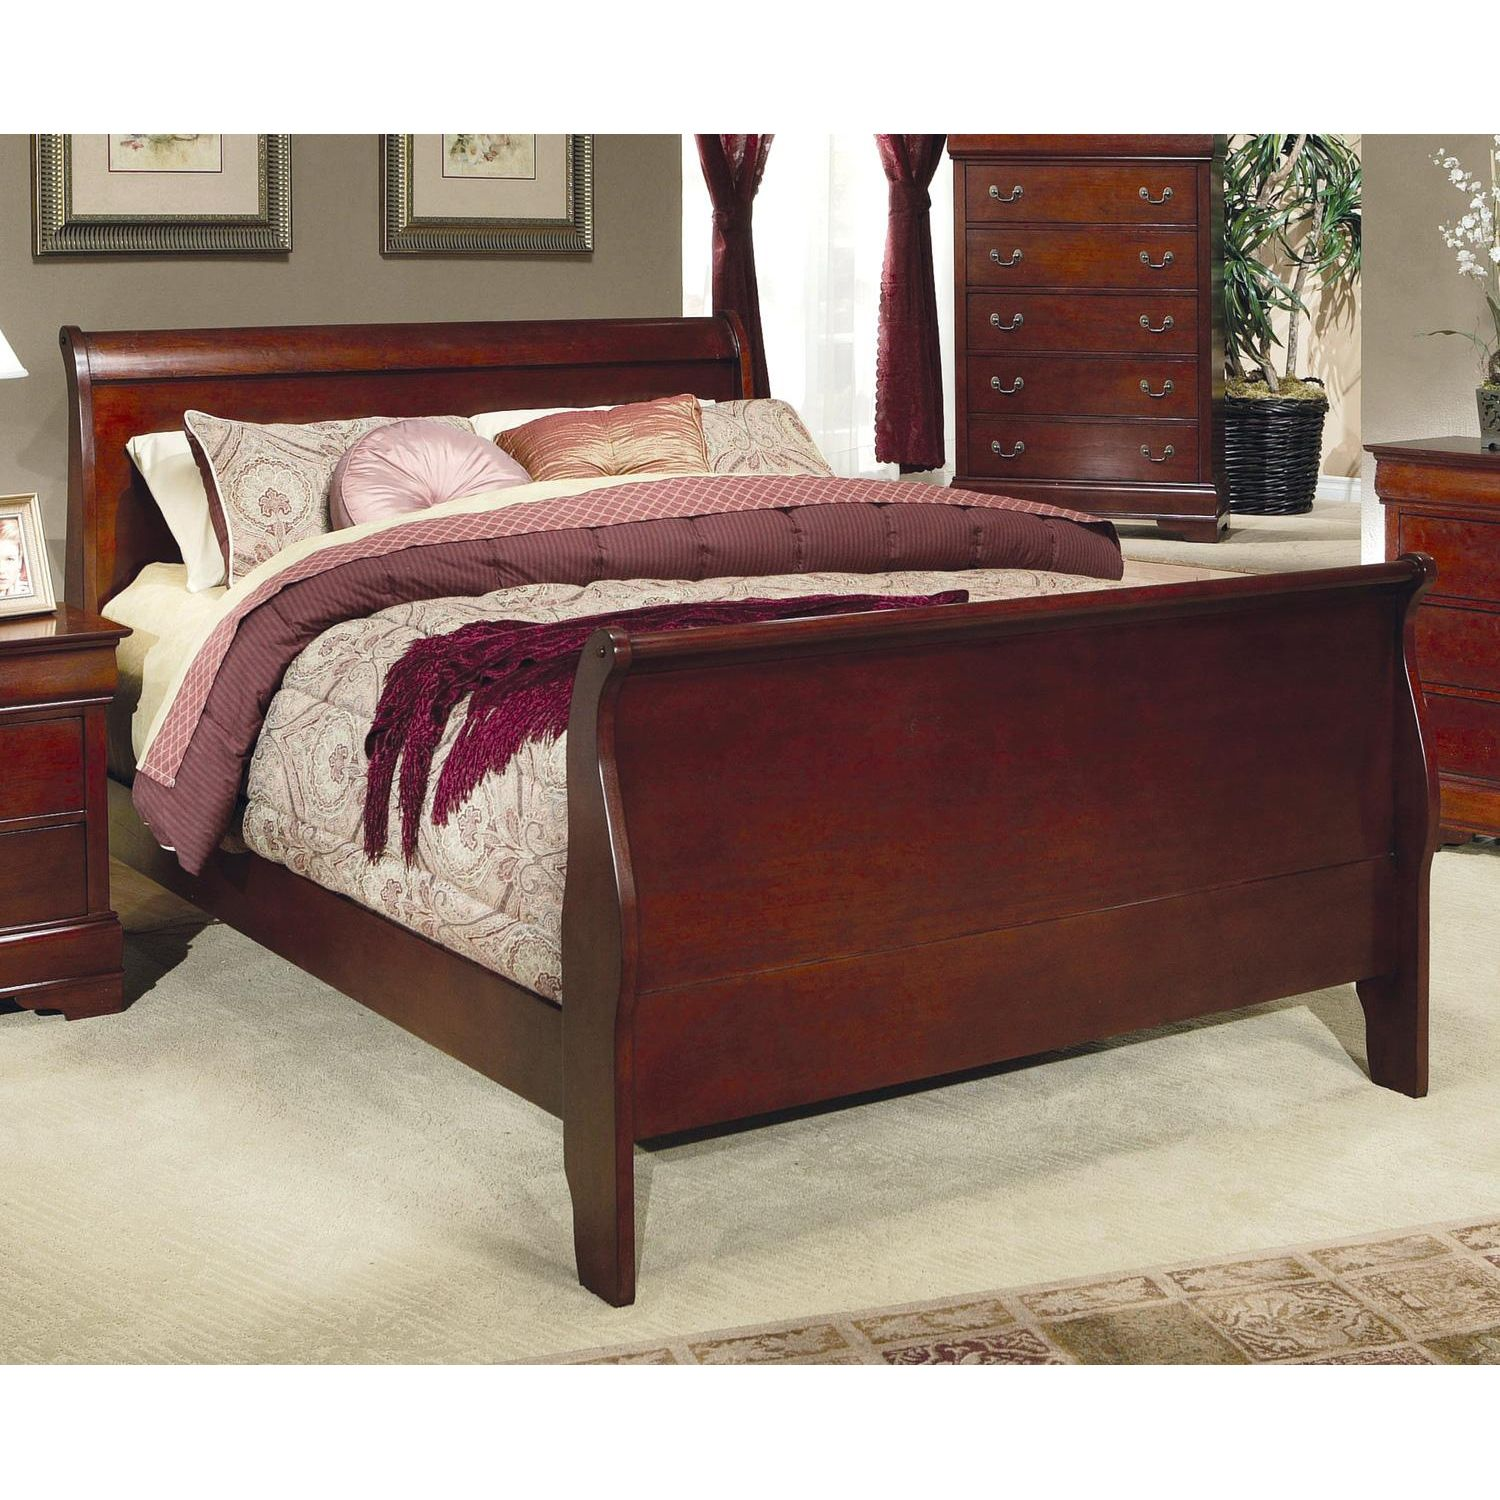 The Interesting Typical Designs Queen Size Sleigh Bed Cherry Bedroom Furniture Cherry Wood Bedroom Furniture Cherry Bedroom